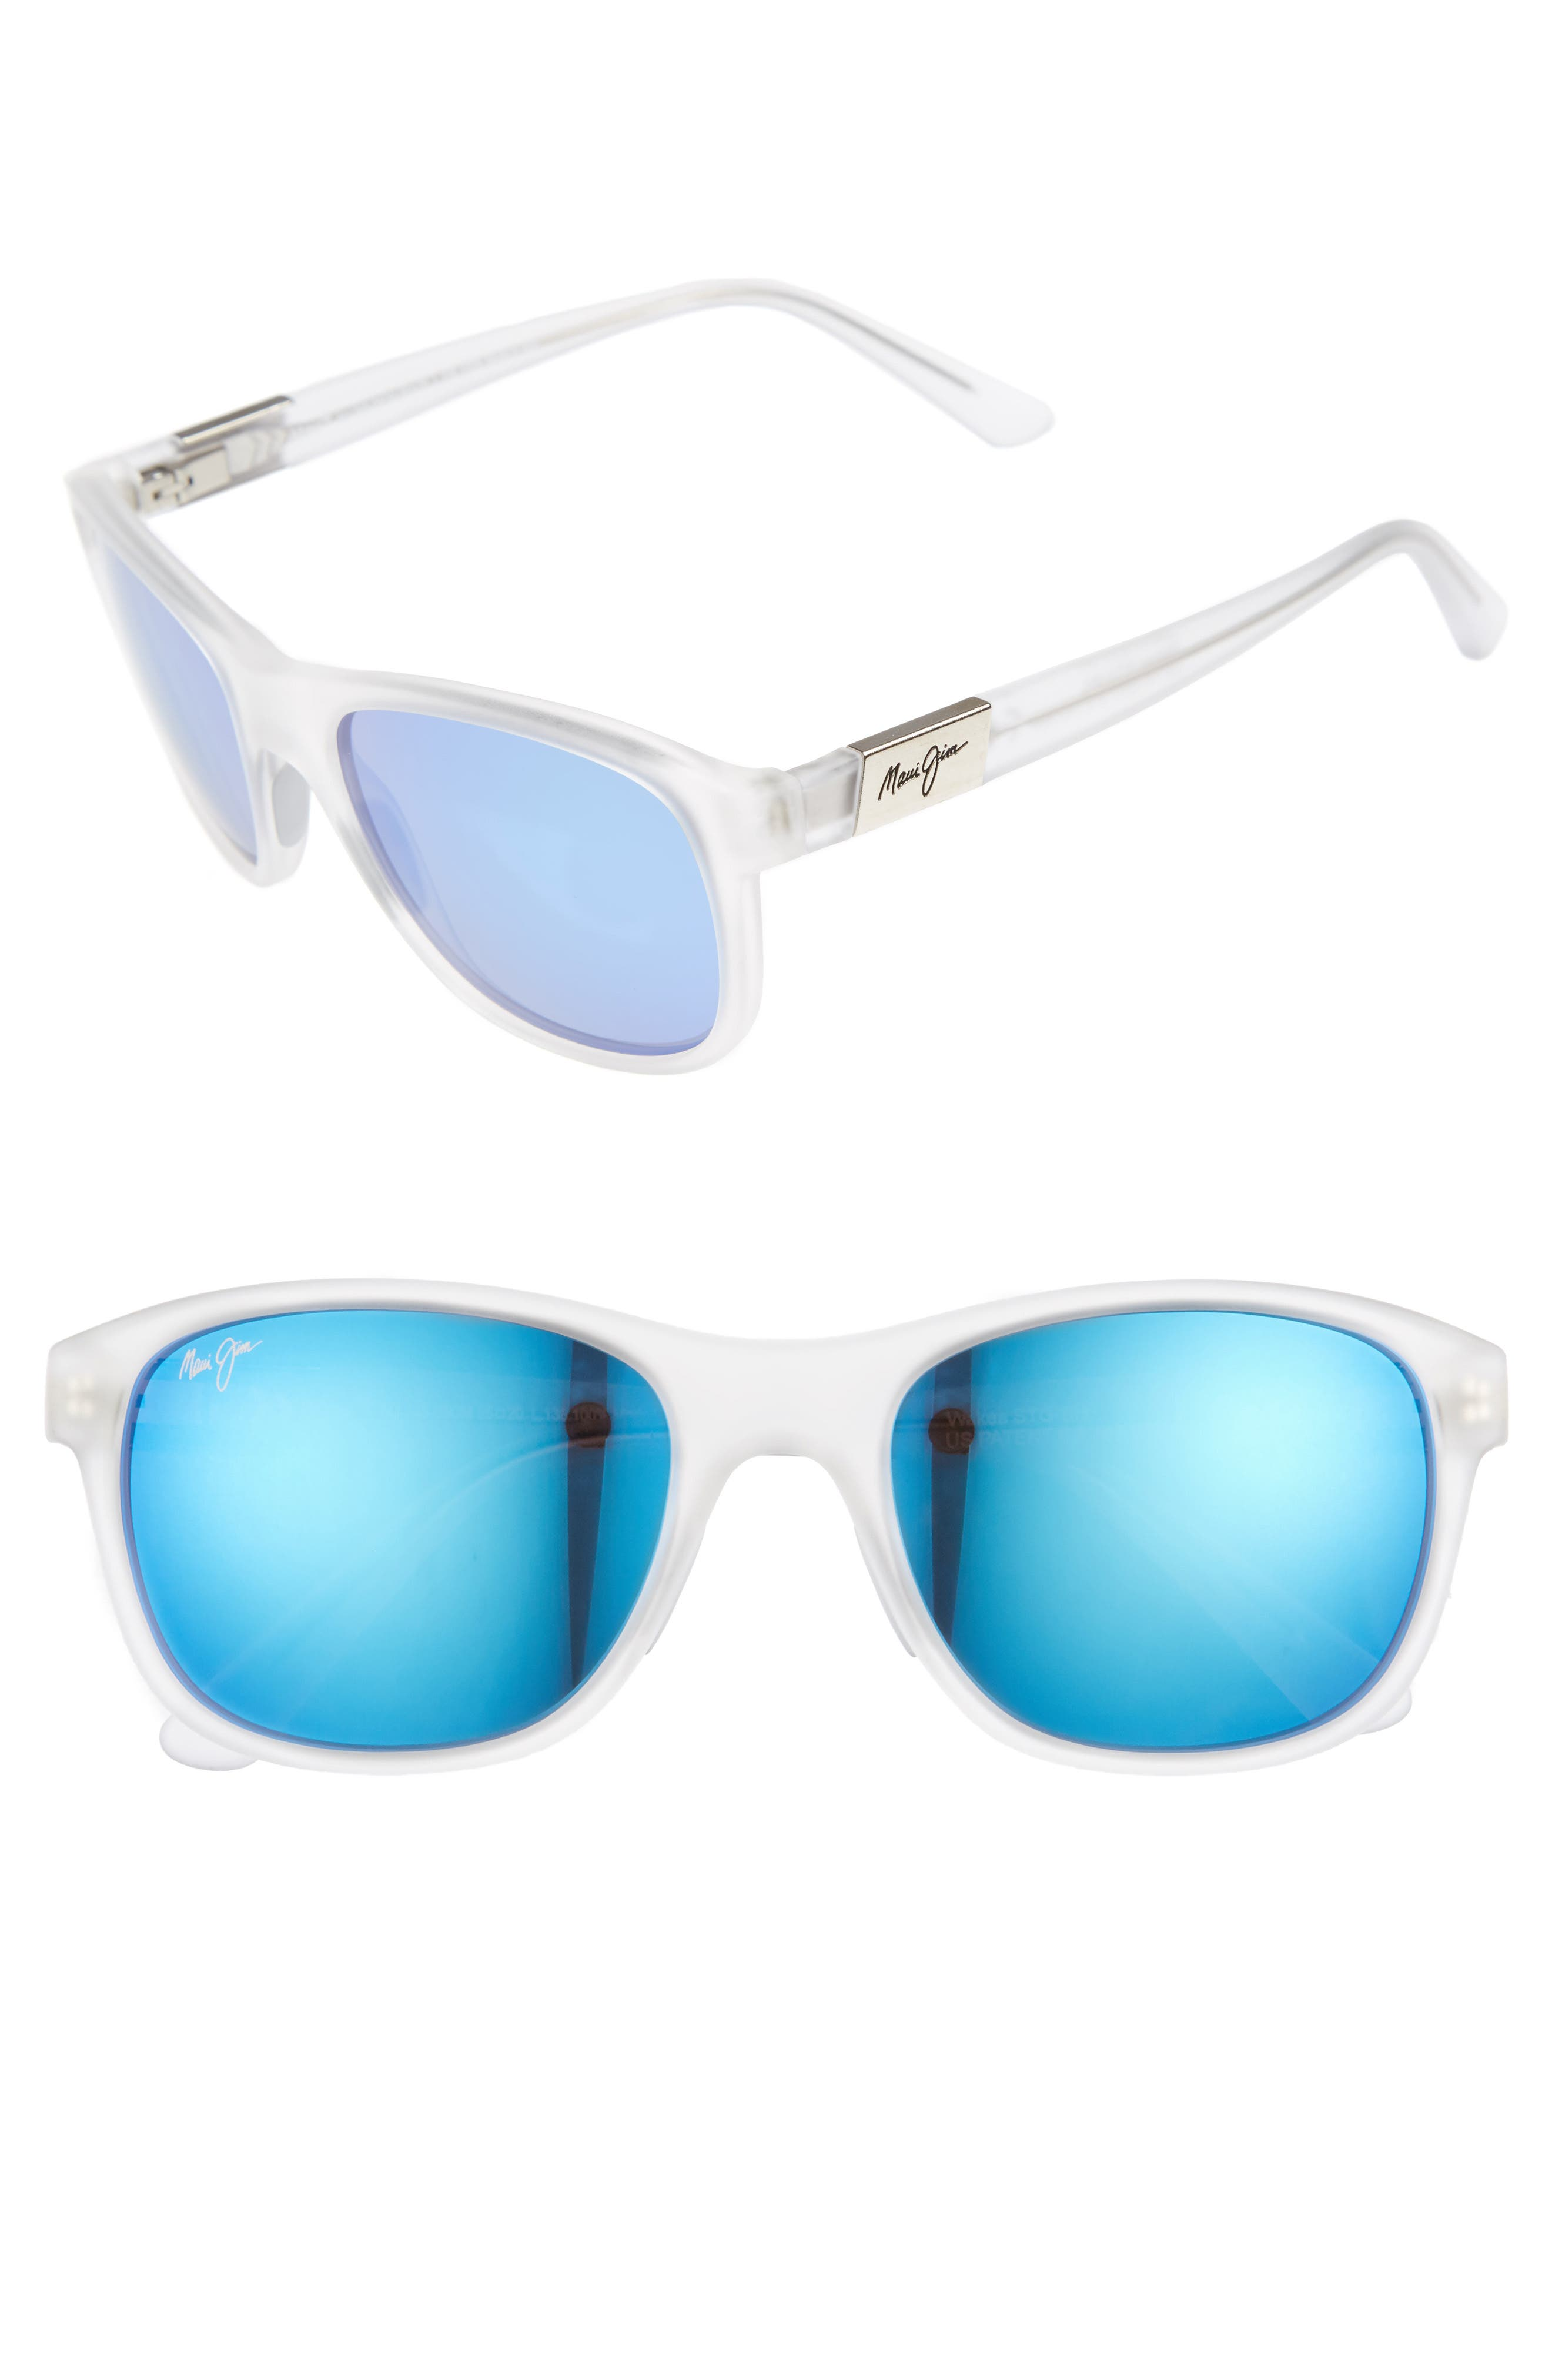 Wakea 55mm Polarized Sunglasses,                             Main thumbnail 1, color,                             Frosted Crystal/ Blue Hawaii